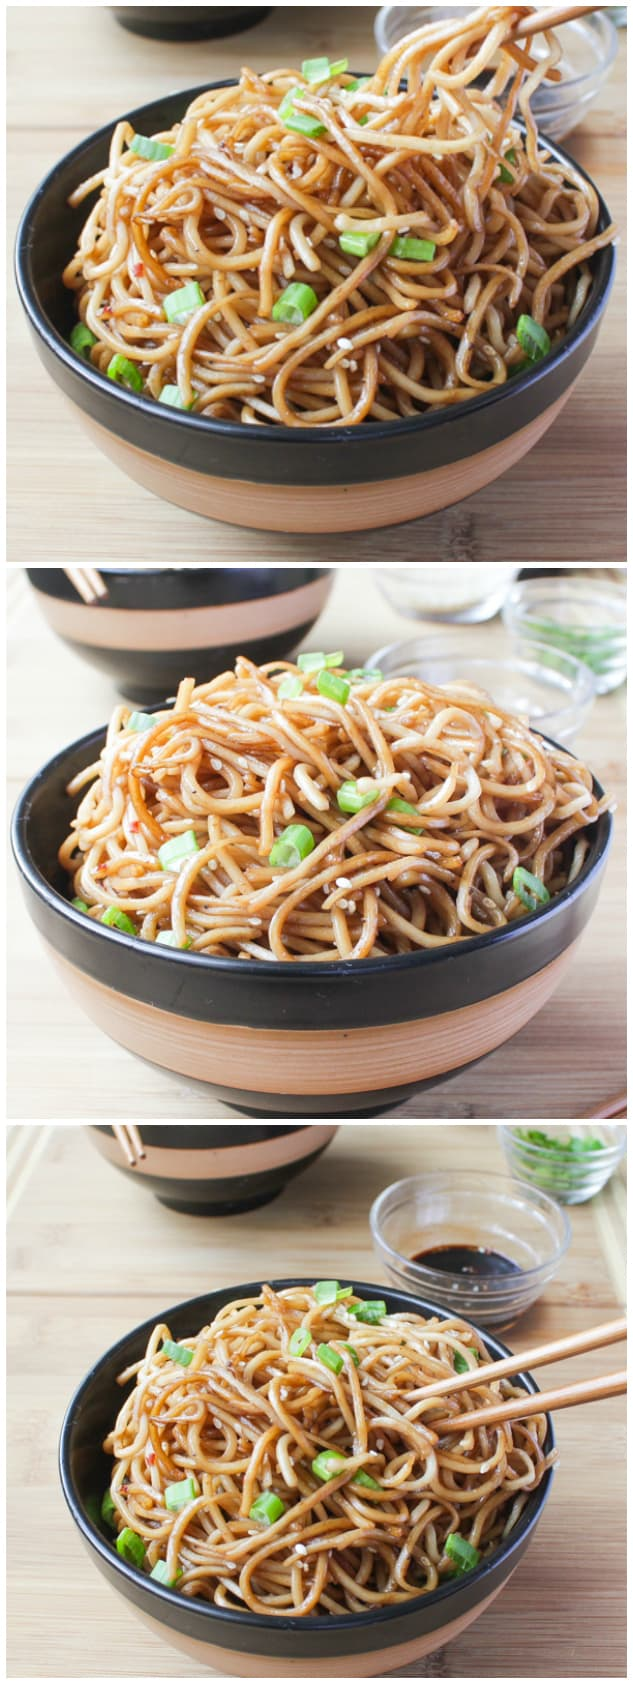 3 different angles of Sesame Noodles with Honey Ginger Sauce in a black and brown bowl.